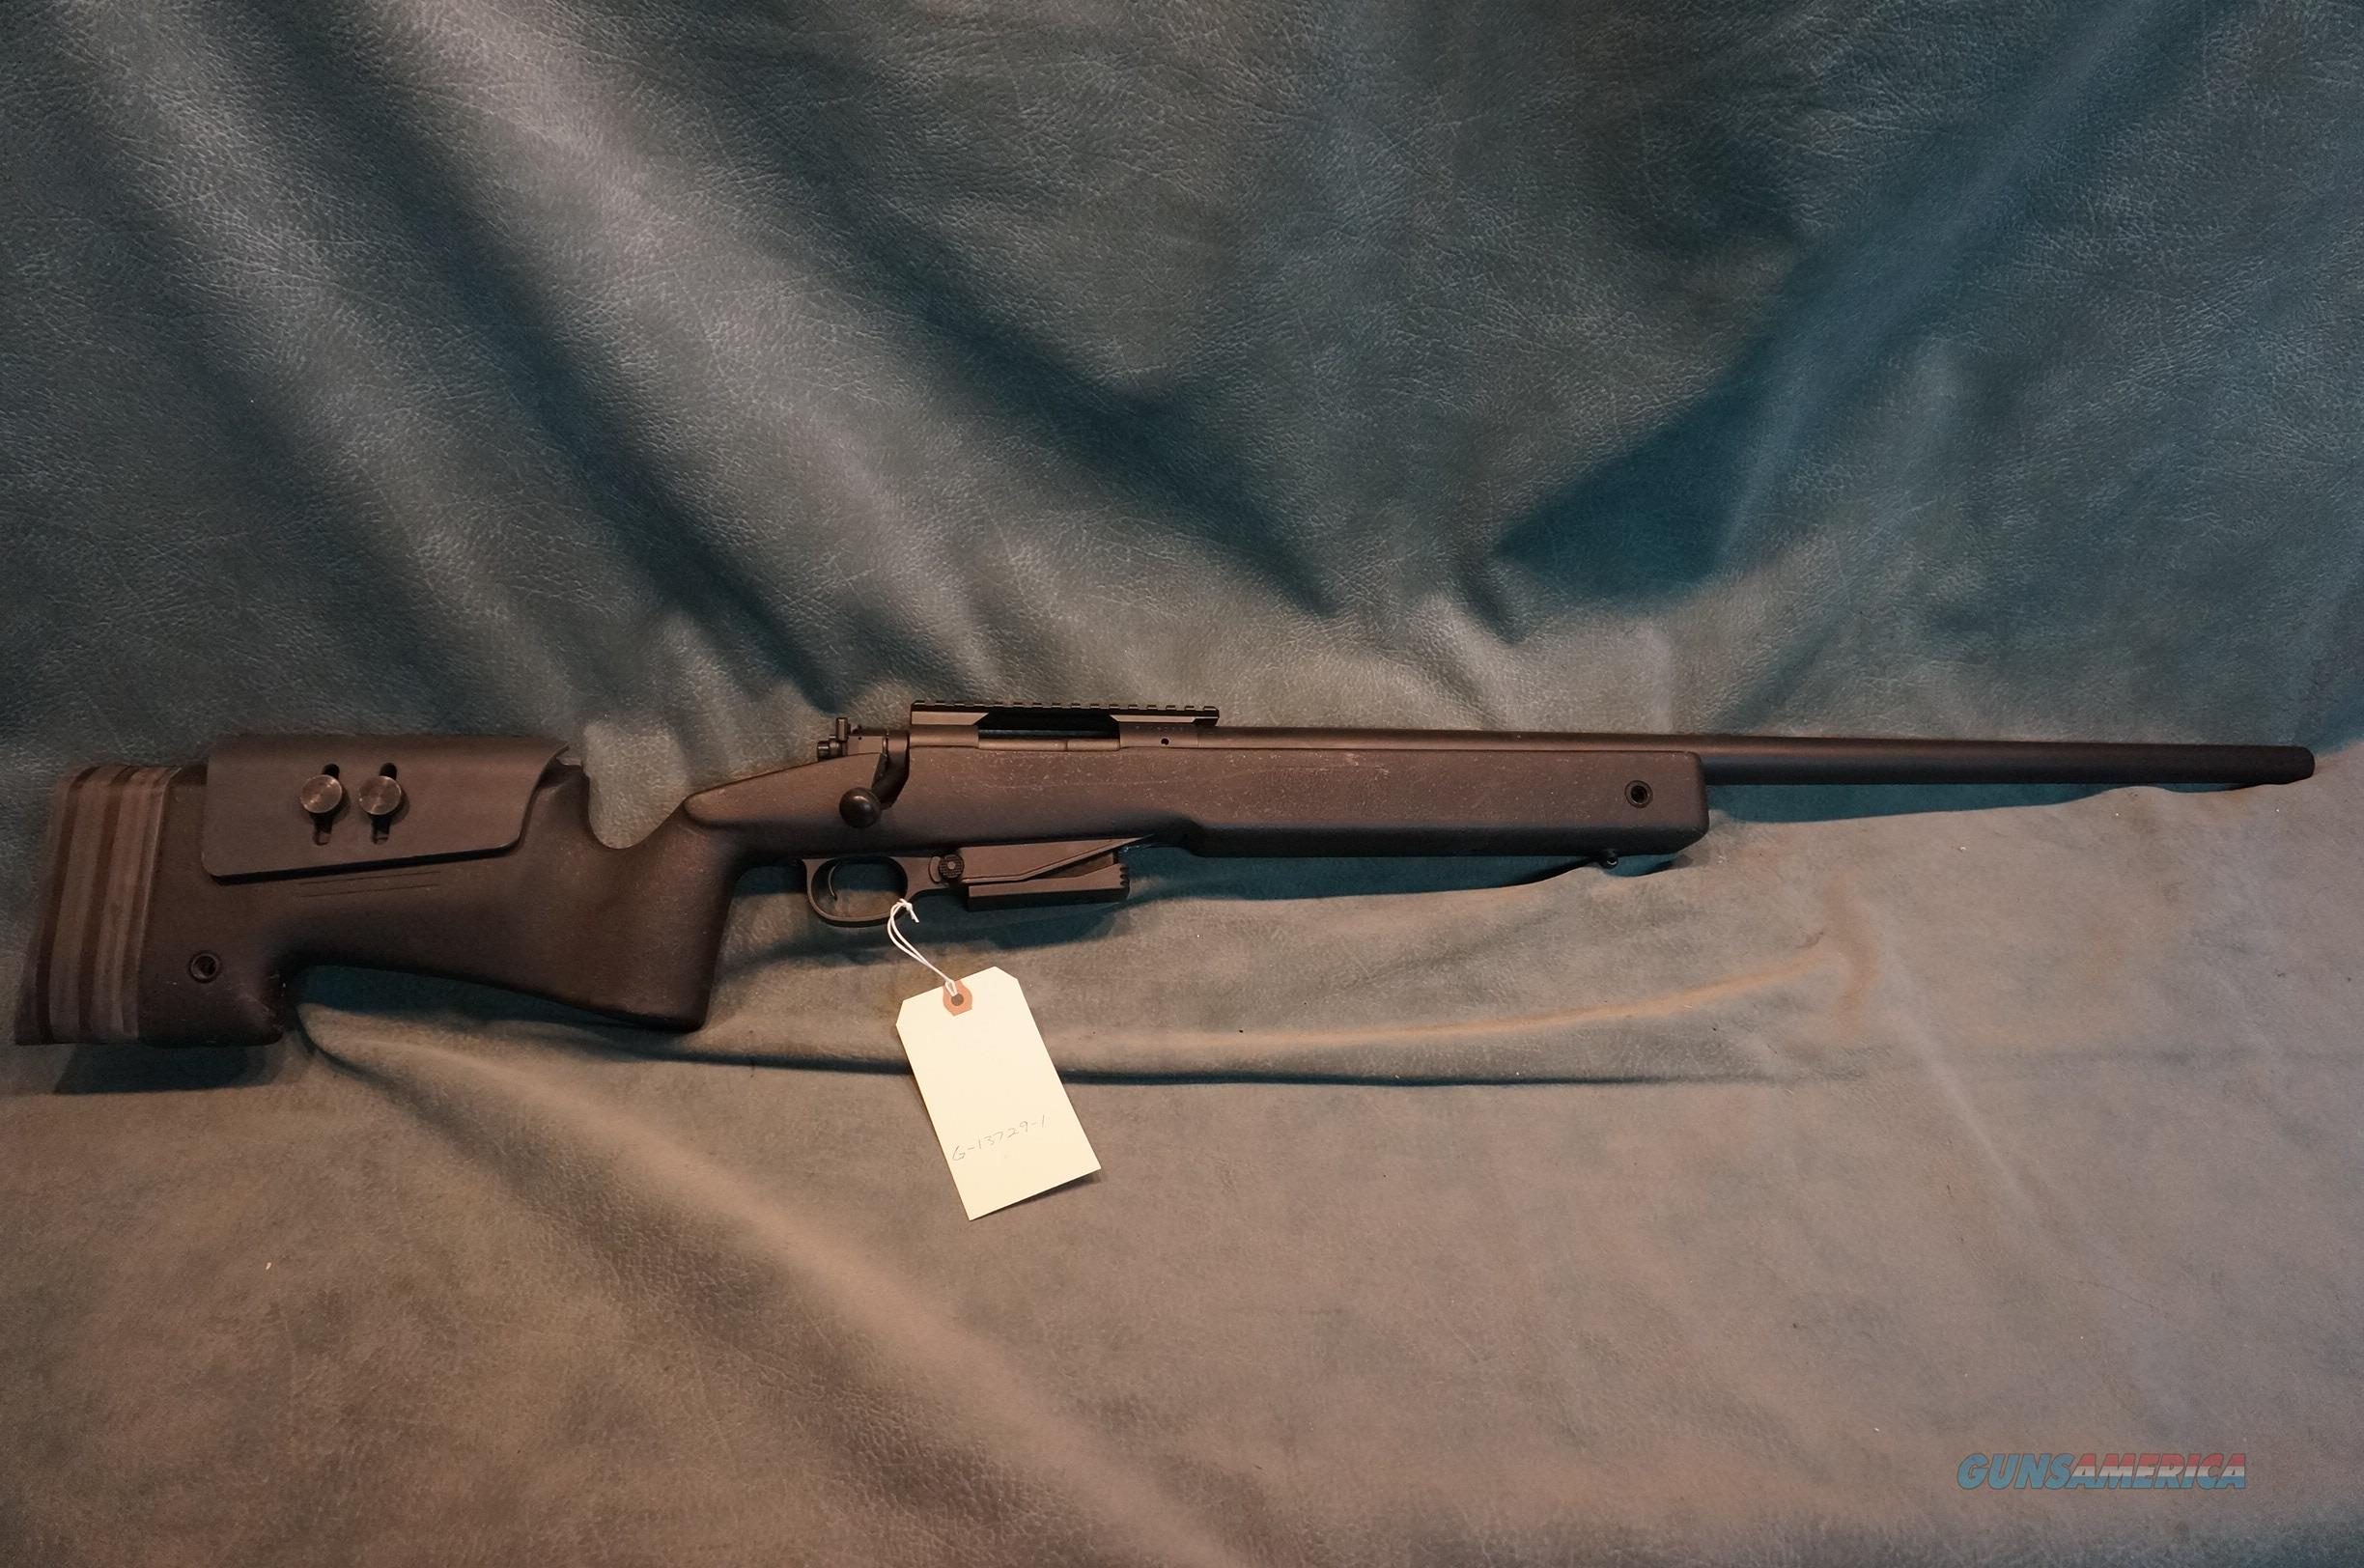 LRI Long Rifles Inc 260Rem Custom  Guns > Rifles > Custom Rifles > Bolt Action